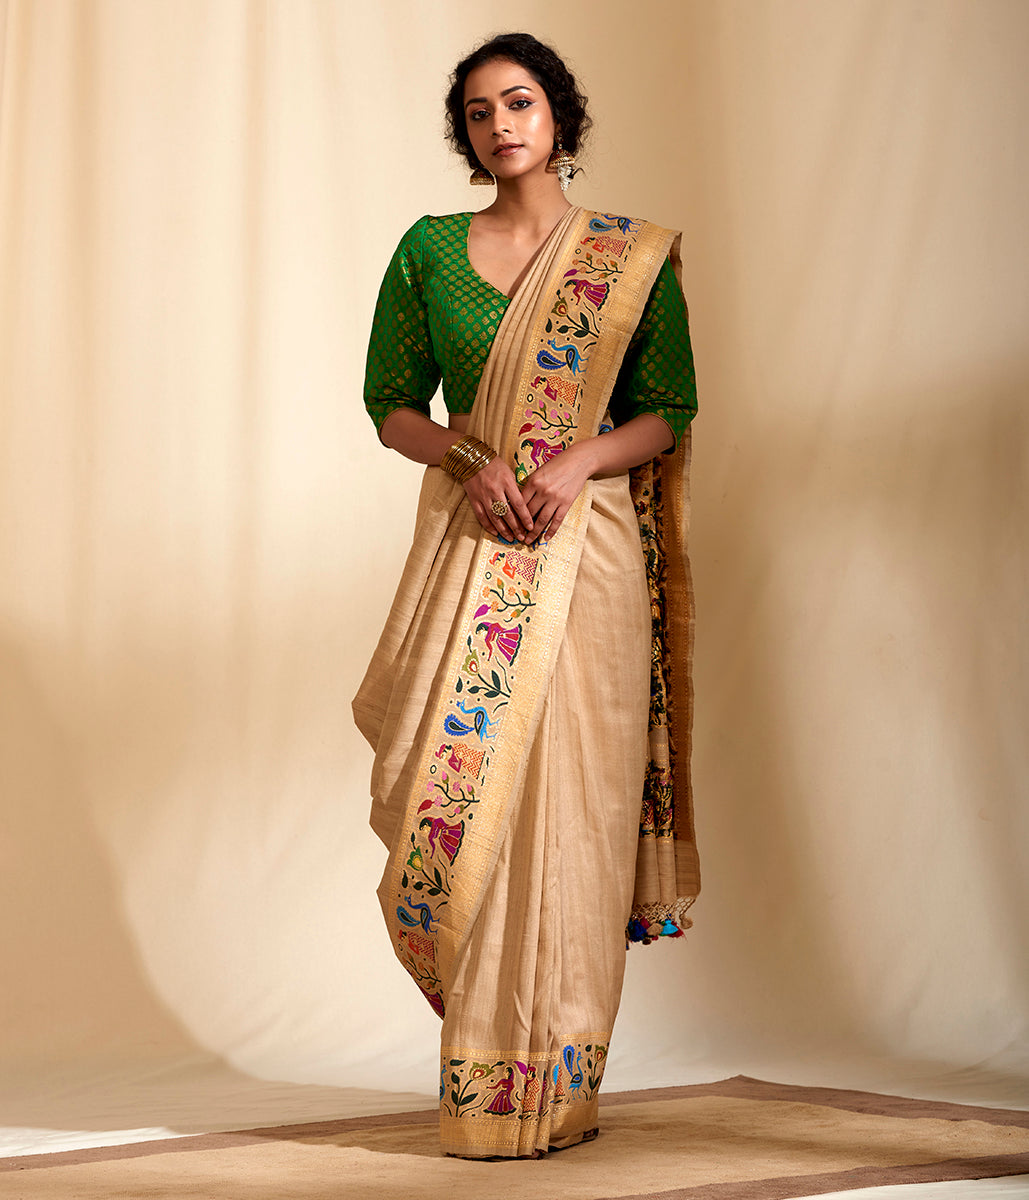 Handwoven tusser Georgette saree with human figurines and animal motifs